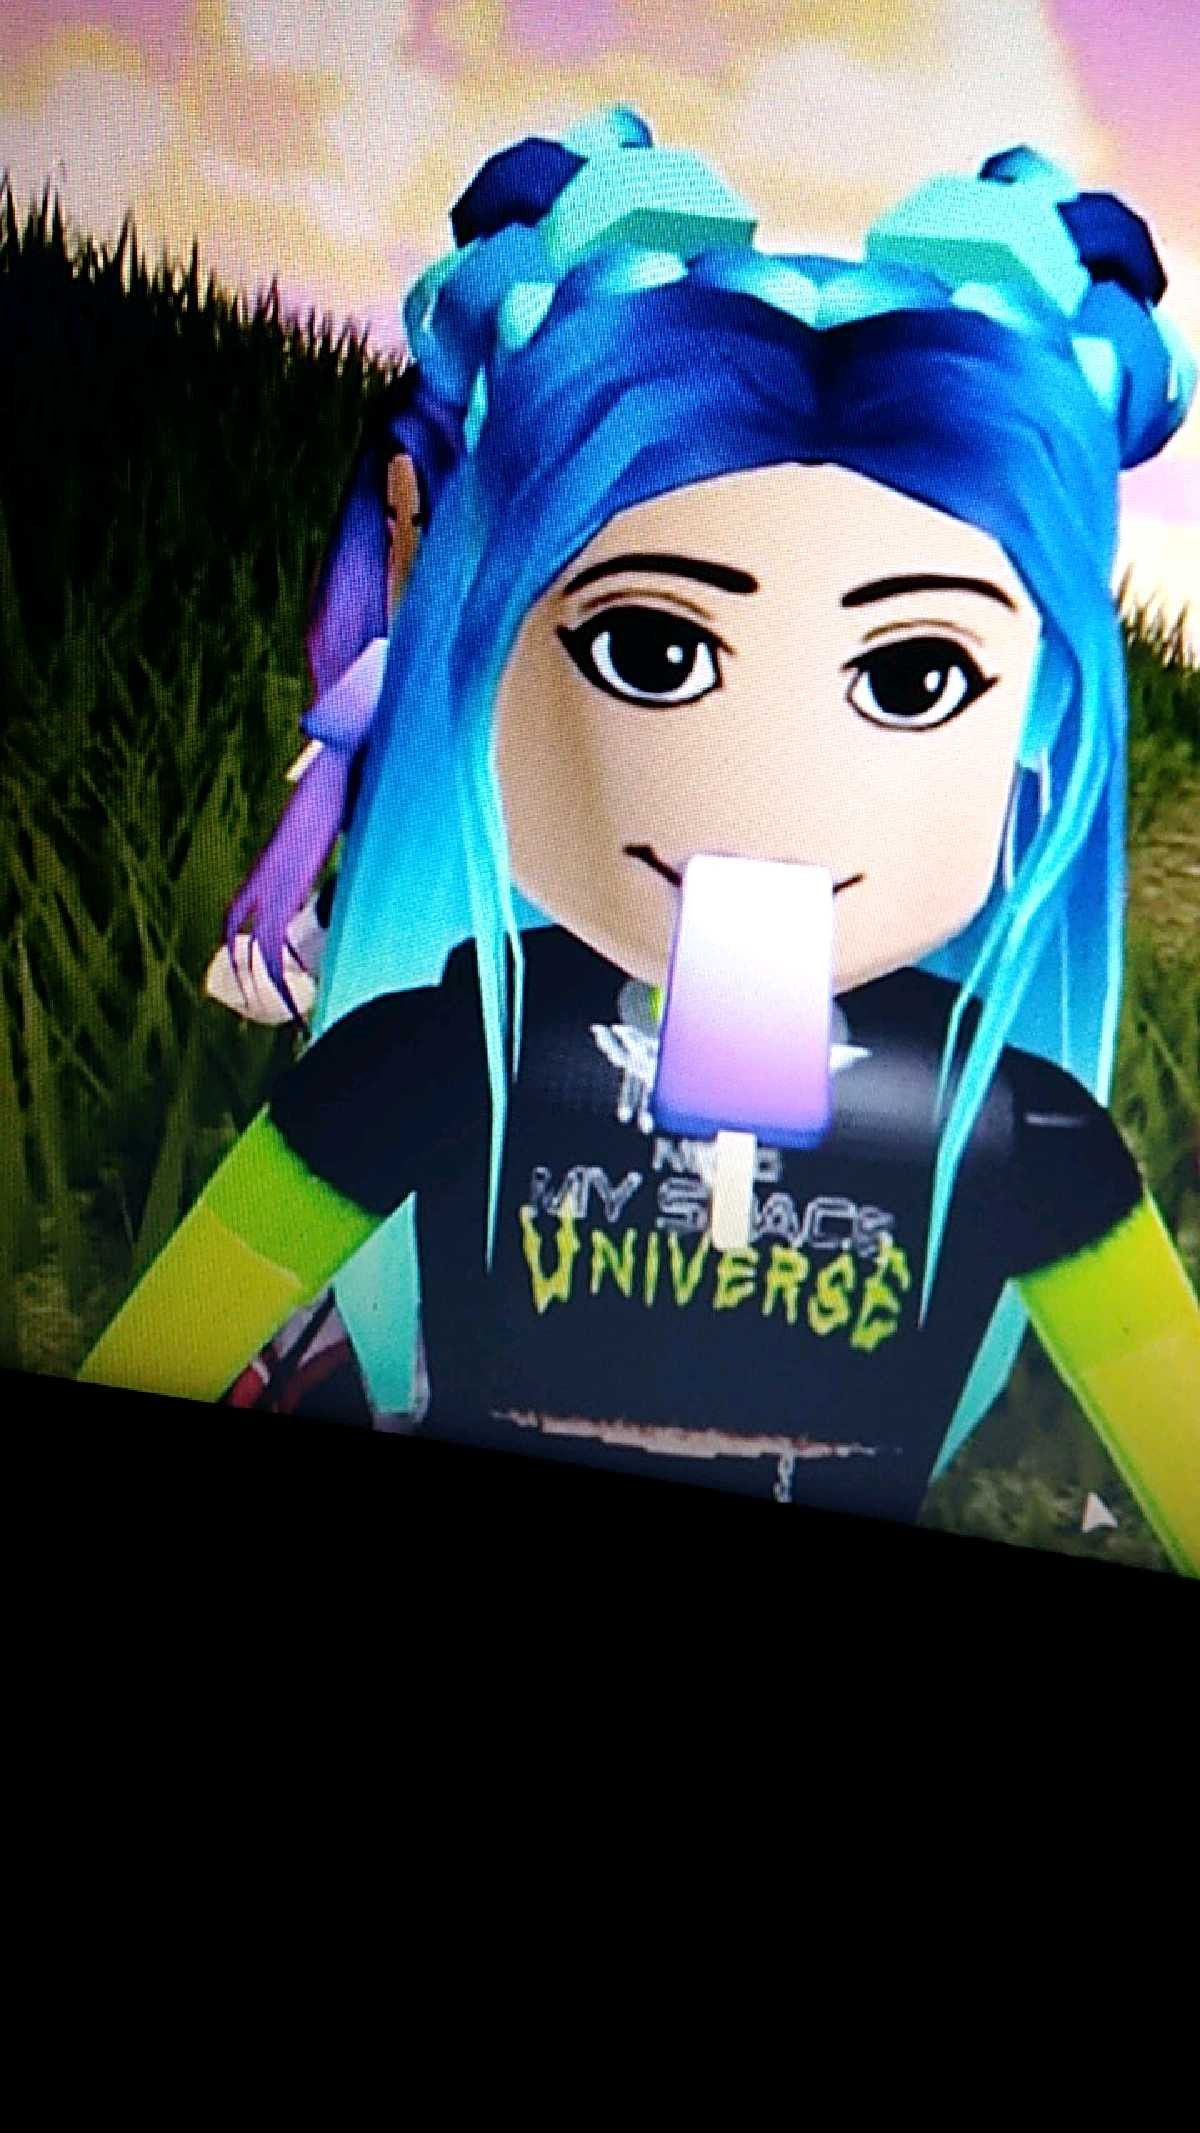 Pin By Dream Team On Youtubers In 2020 Roblox Pictures Anime Funneh Roblox